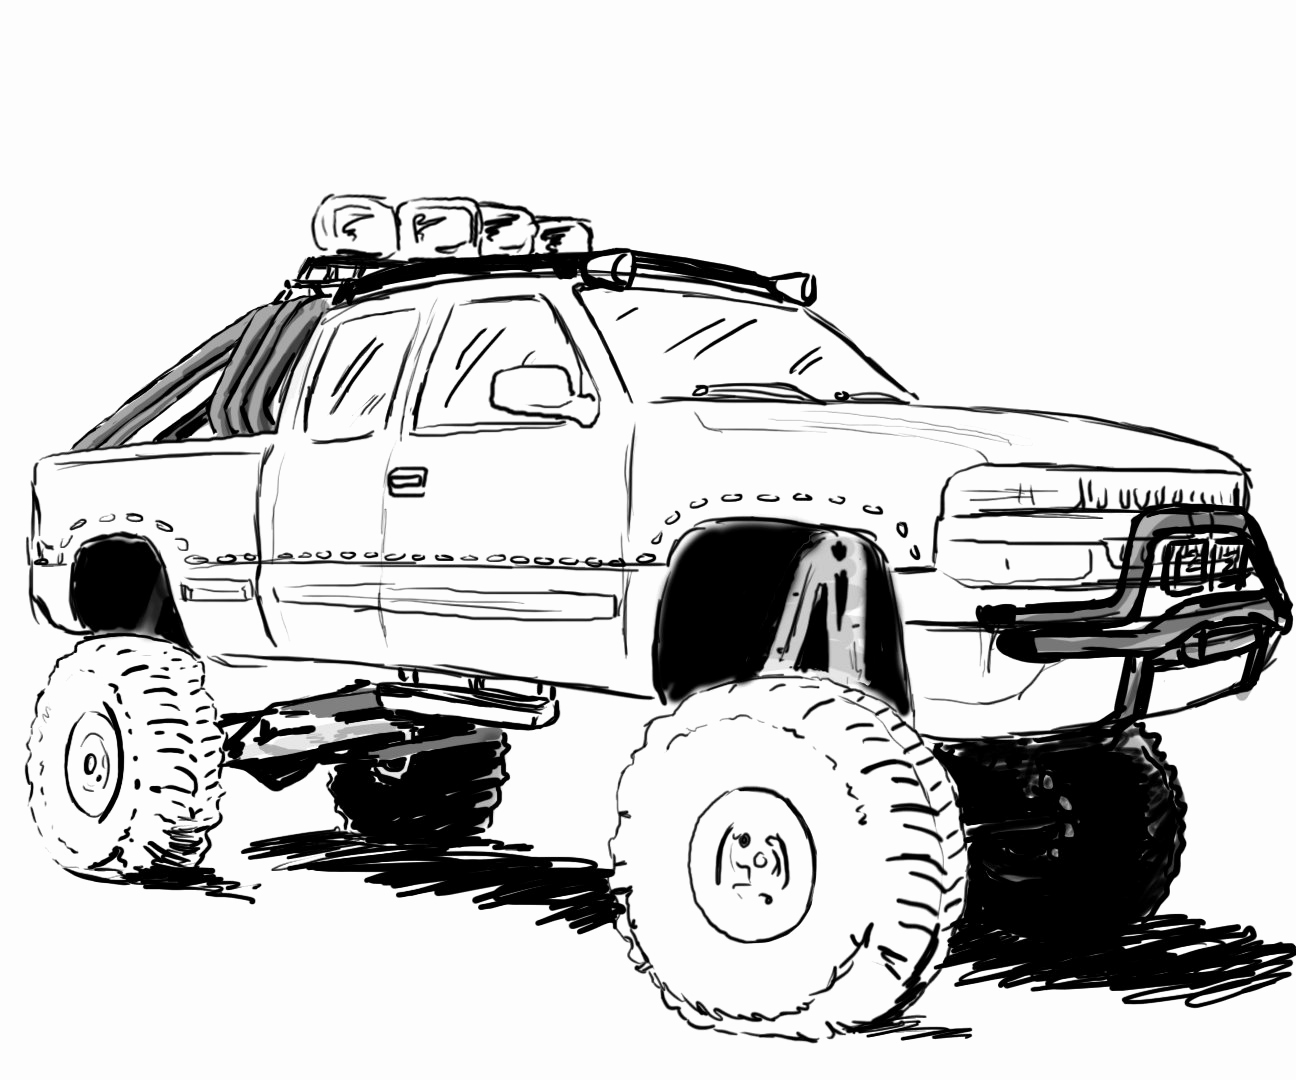 truck colouring in simple fire truck coloring pages at getcoloringscom truck colouring in